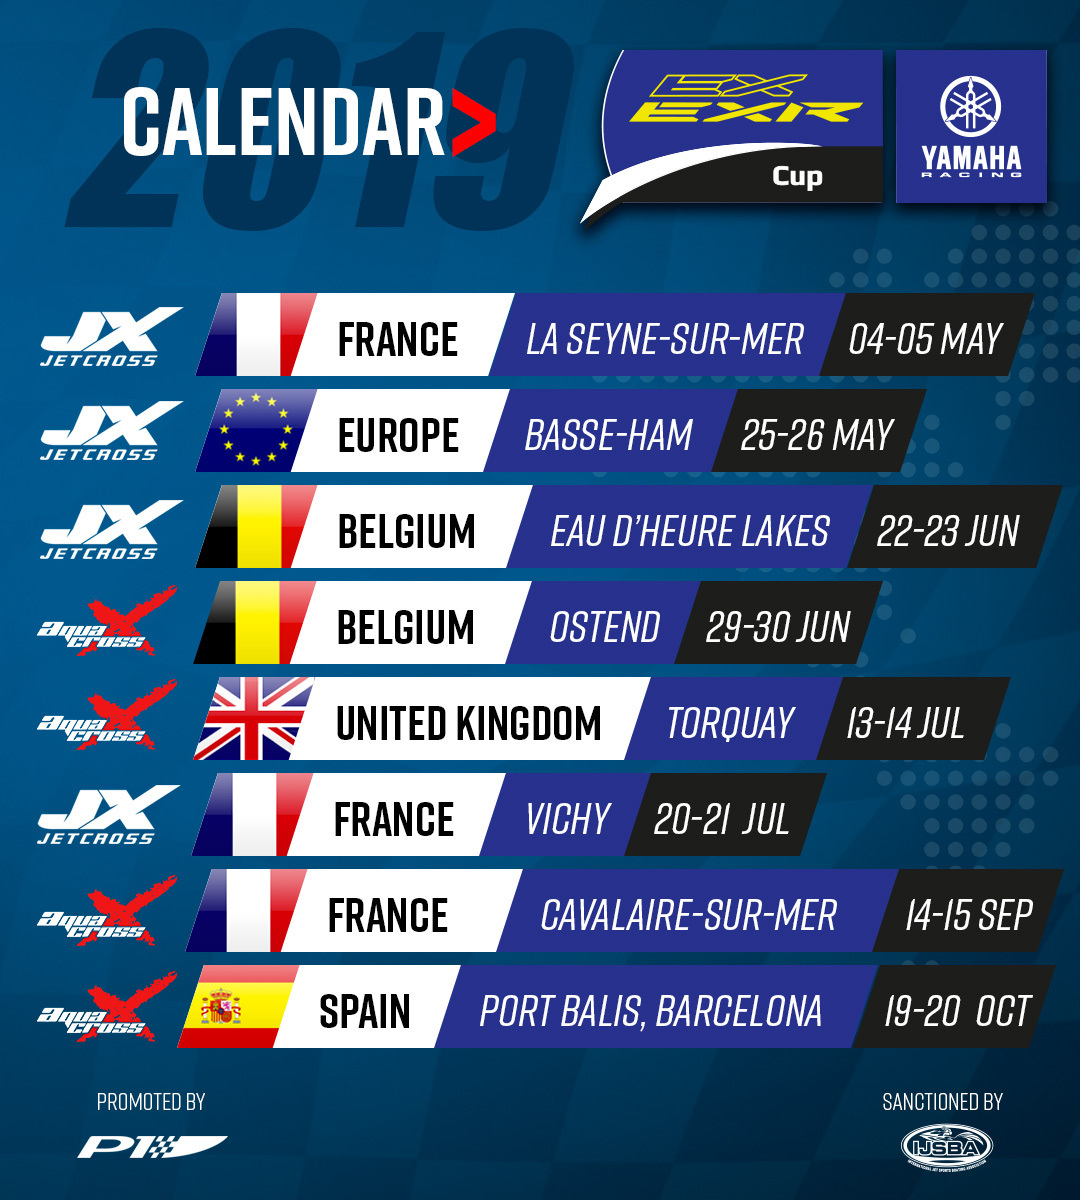 2019 Yamaha EX/EXR Cup calendar - all are individual race (no championship) - awarded 1st, 2nd, 3rd